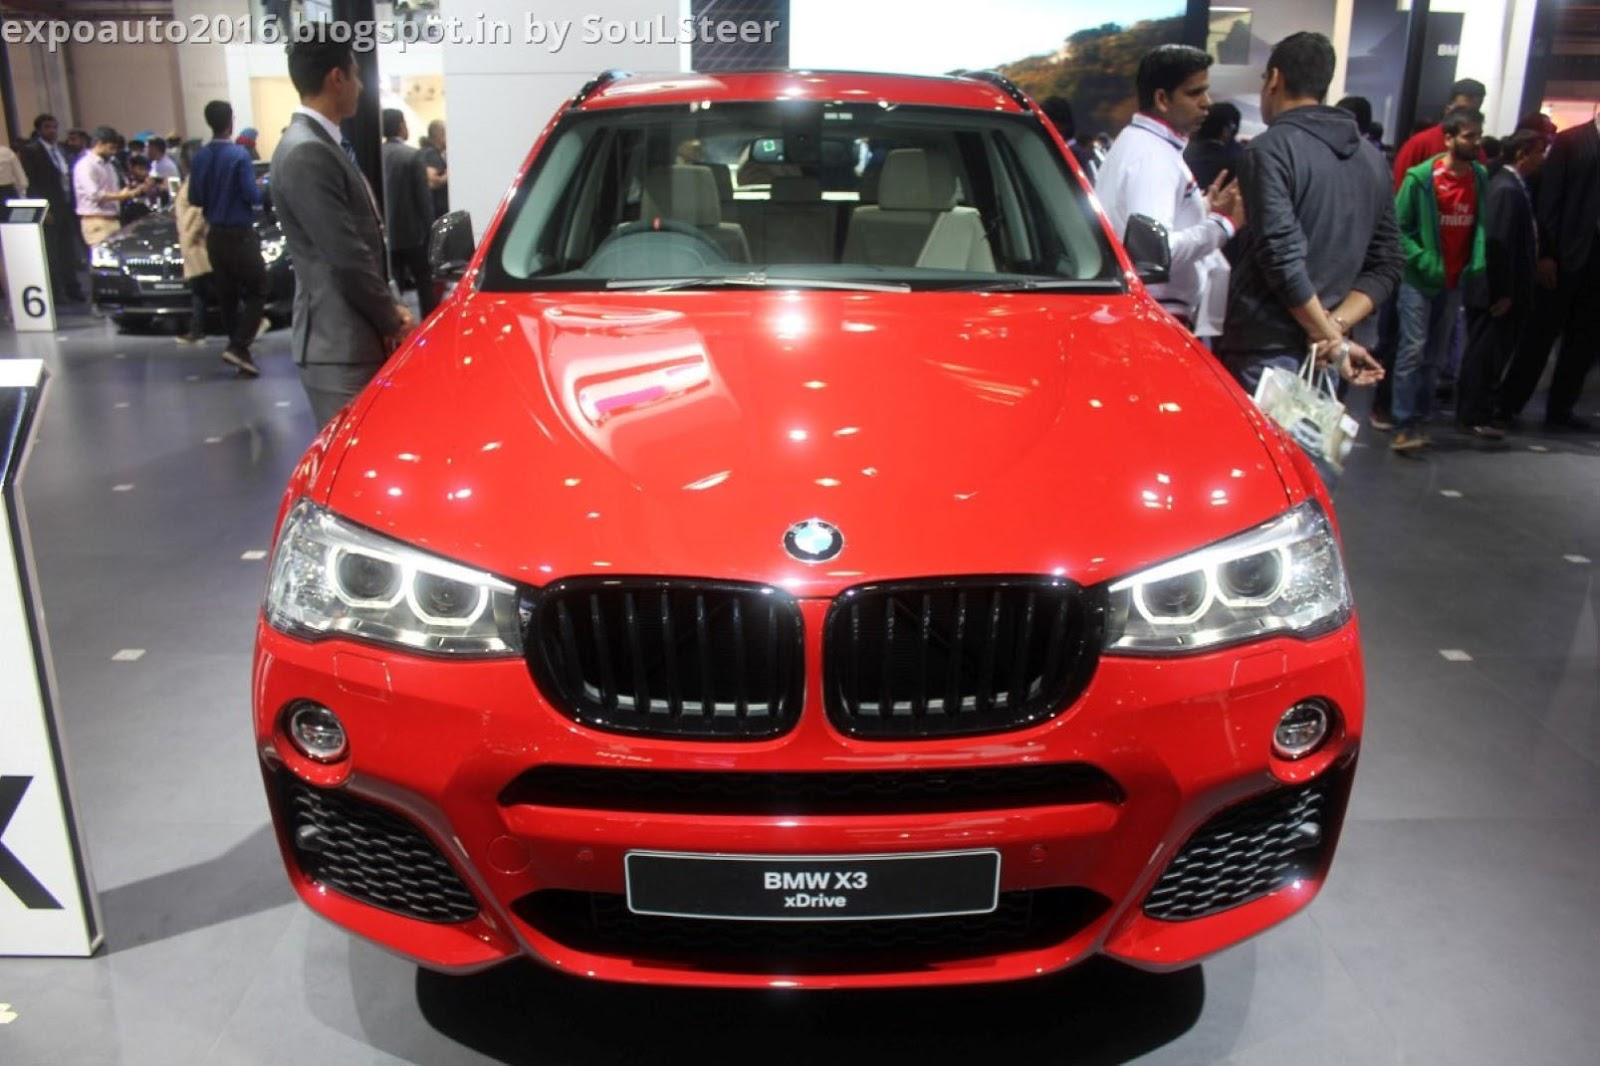 Red BMW X3 XDrive20d XLine Compact Luxury Crossover SUV On Display At Auto Expo 2016